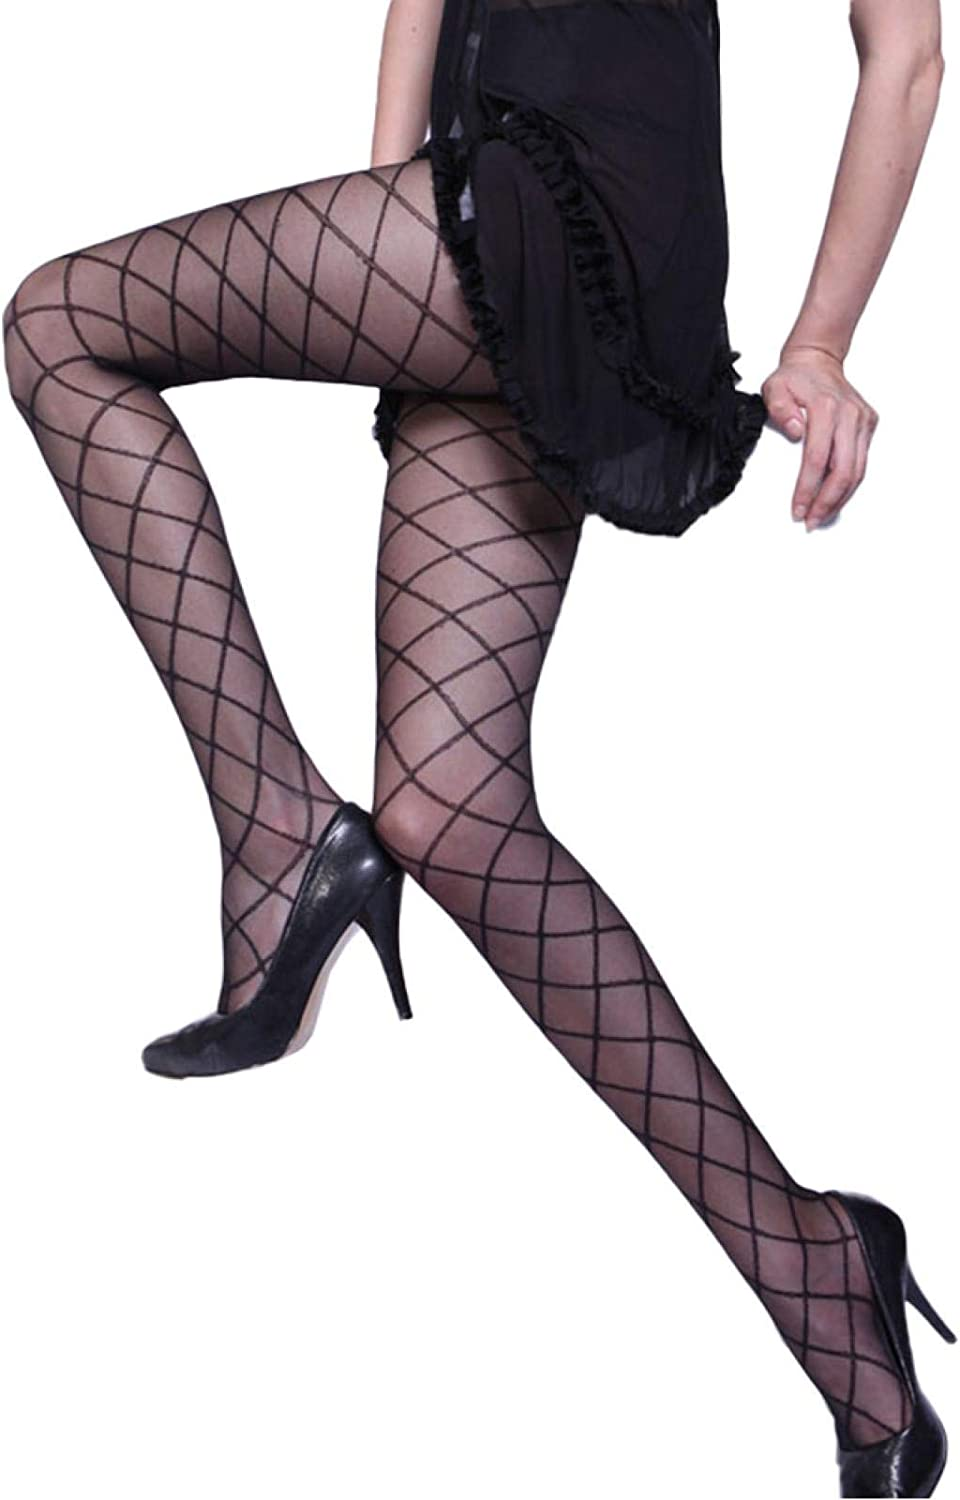 ANNIEE Polka Dot Tights for Women, Womens Black Sheer Patterned Pantyhose Stockings,Fashion Pantyhose